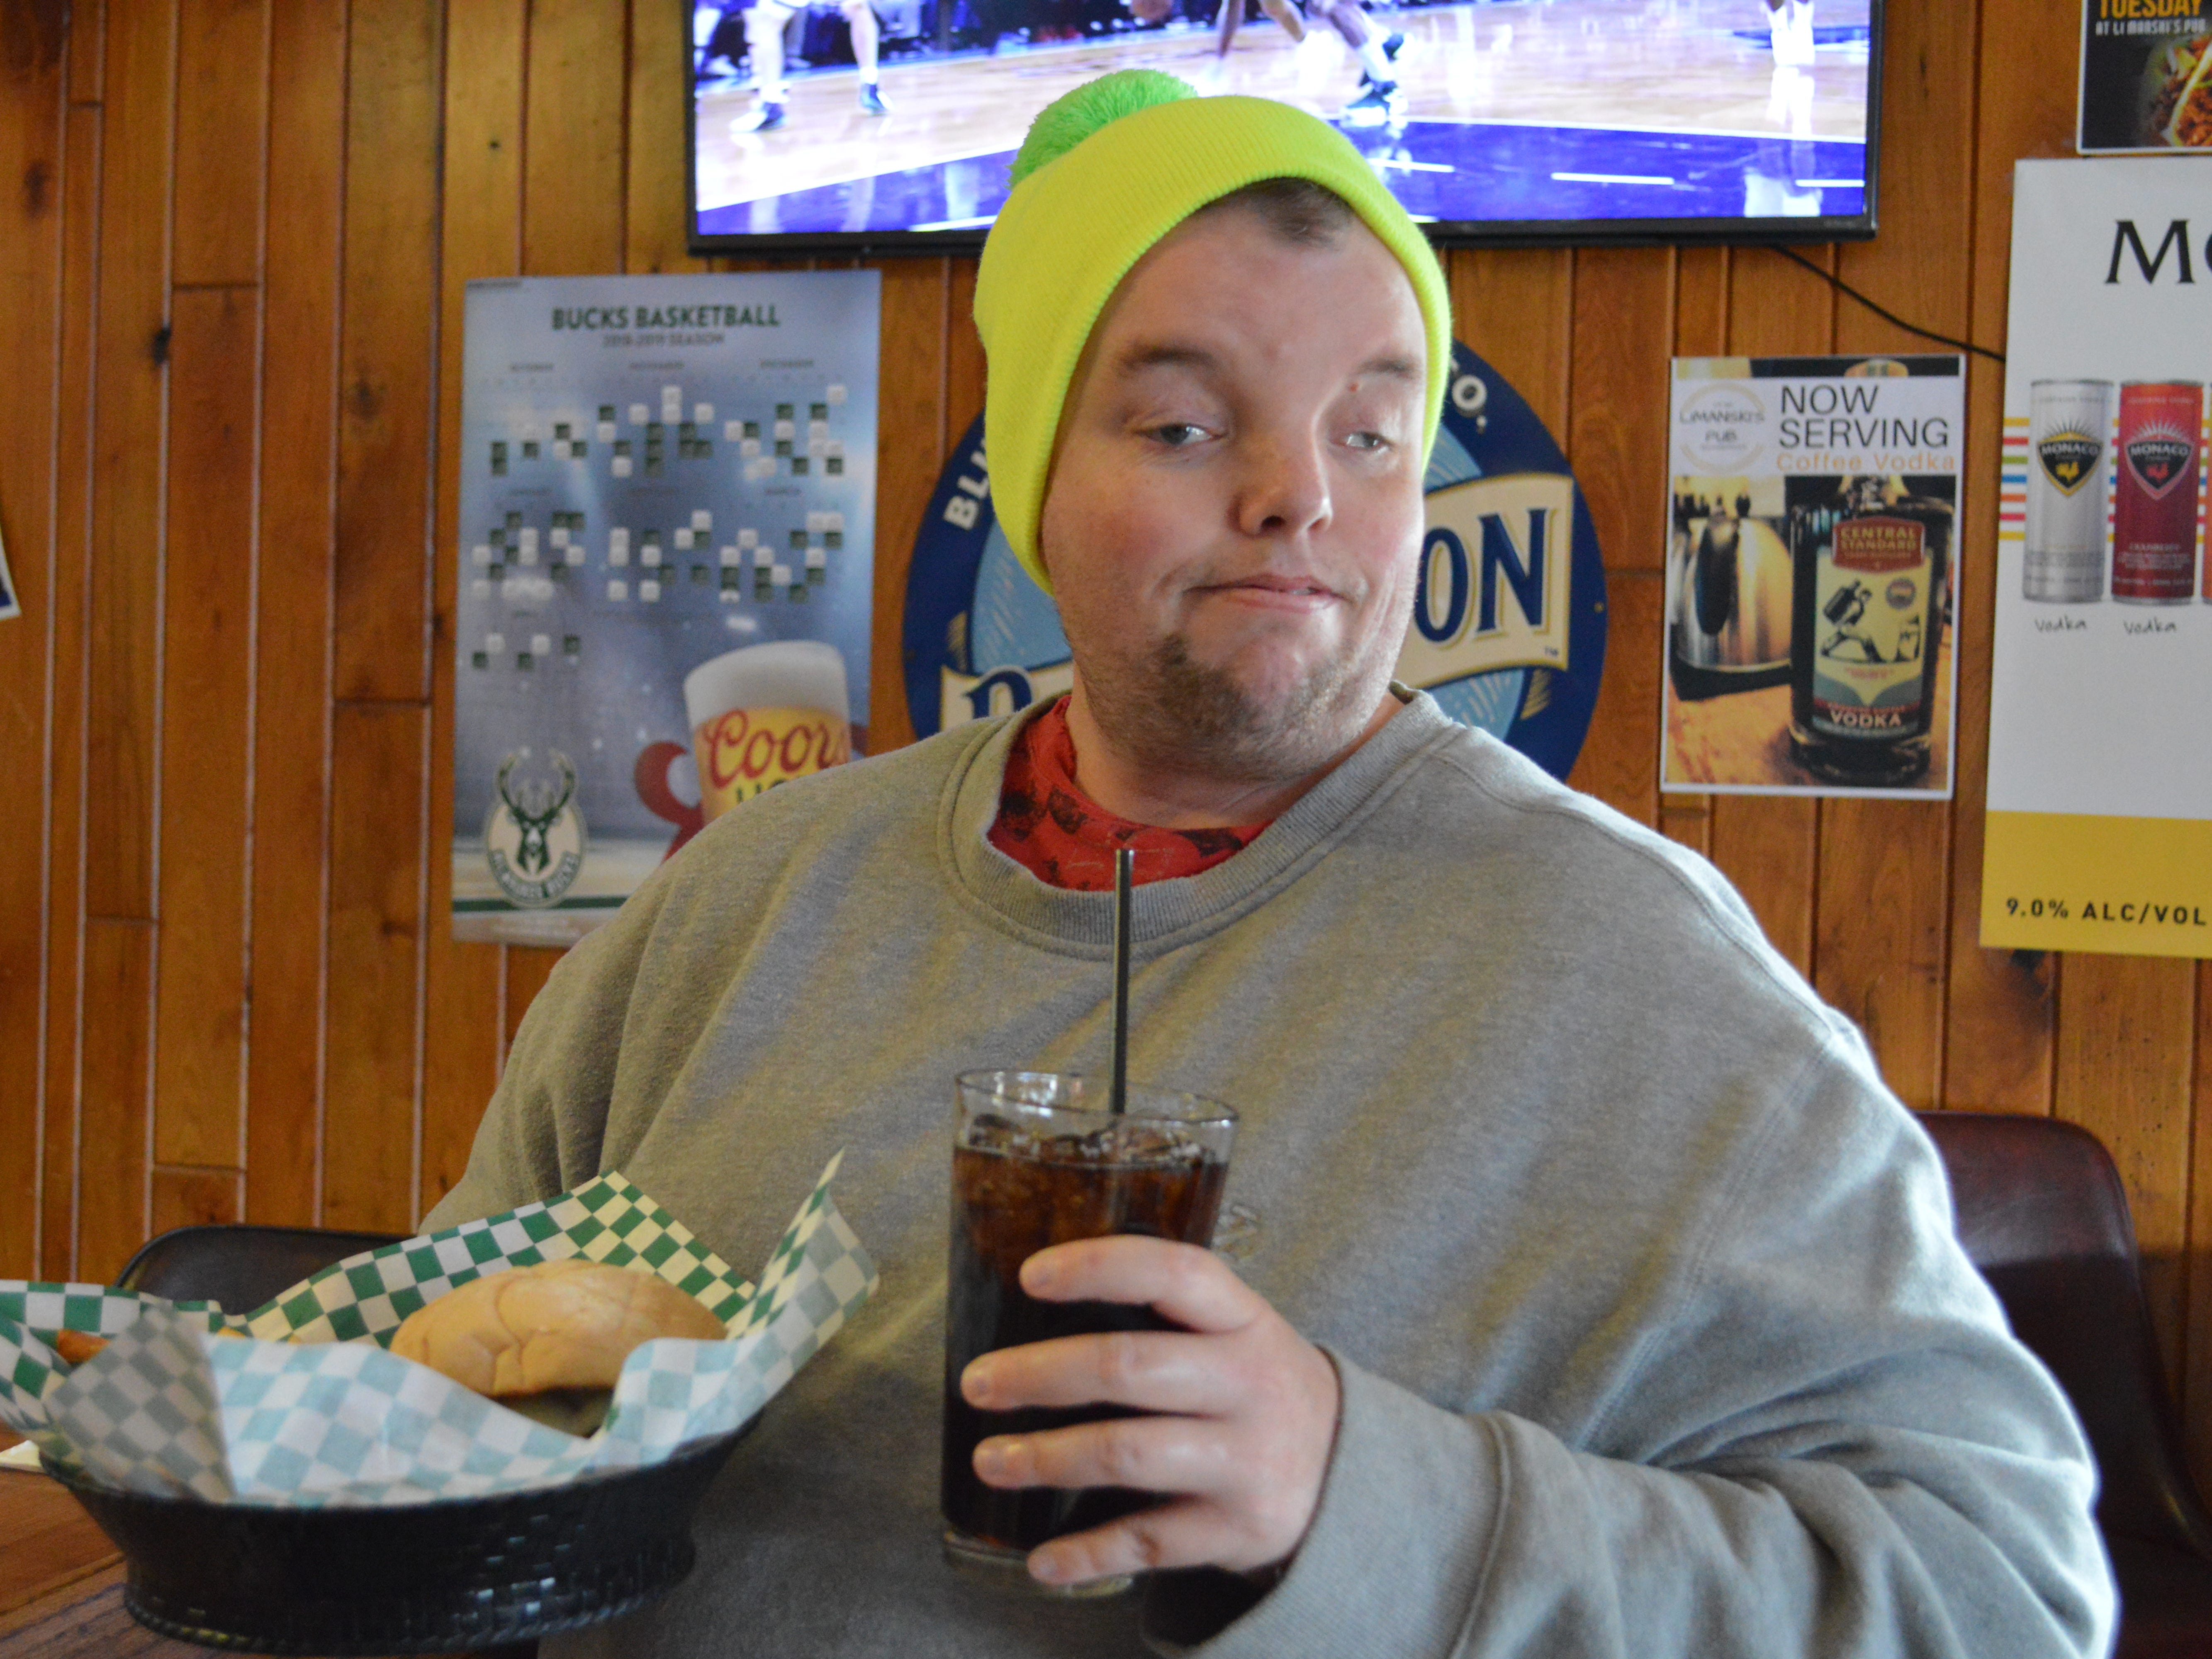 Customer Scott Dow of West Allis stops by the Limanski's Pub twice a week, and is a big fan of the cheeseburgers and staff.